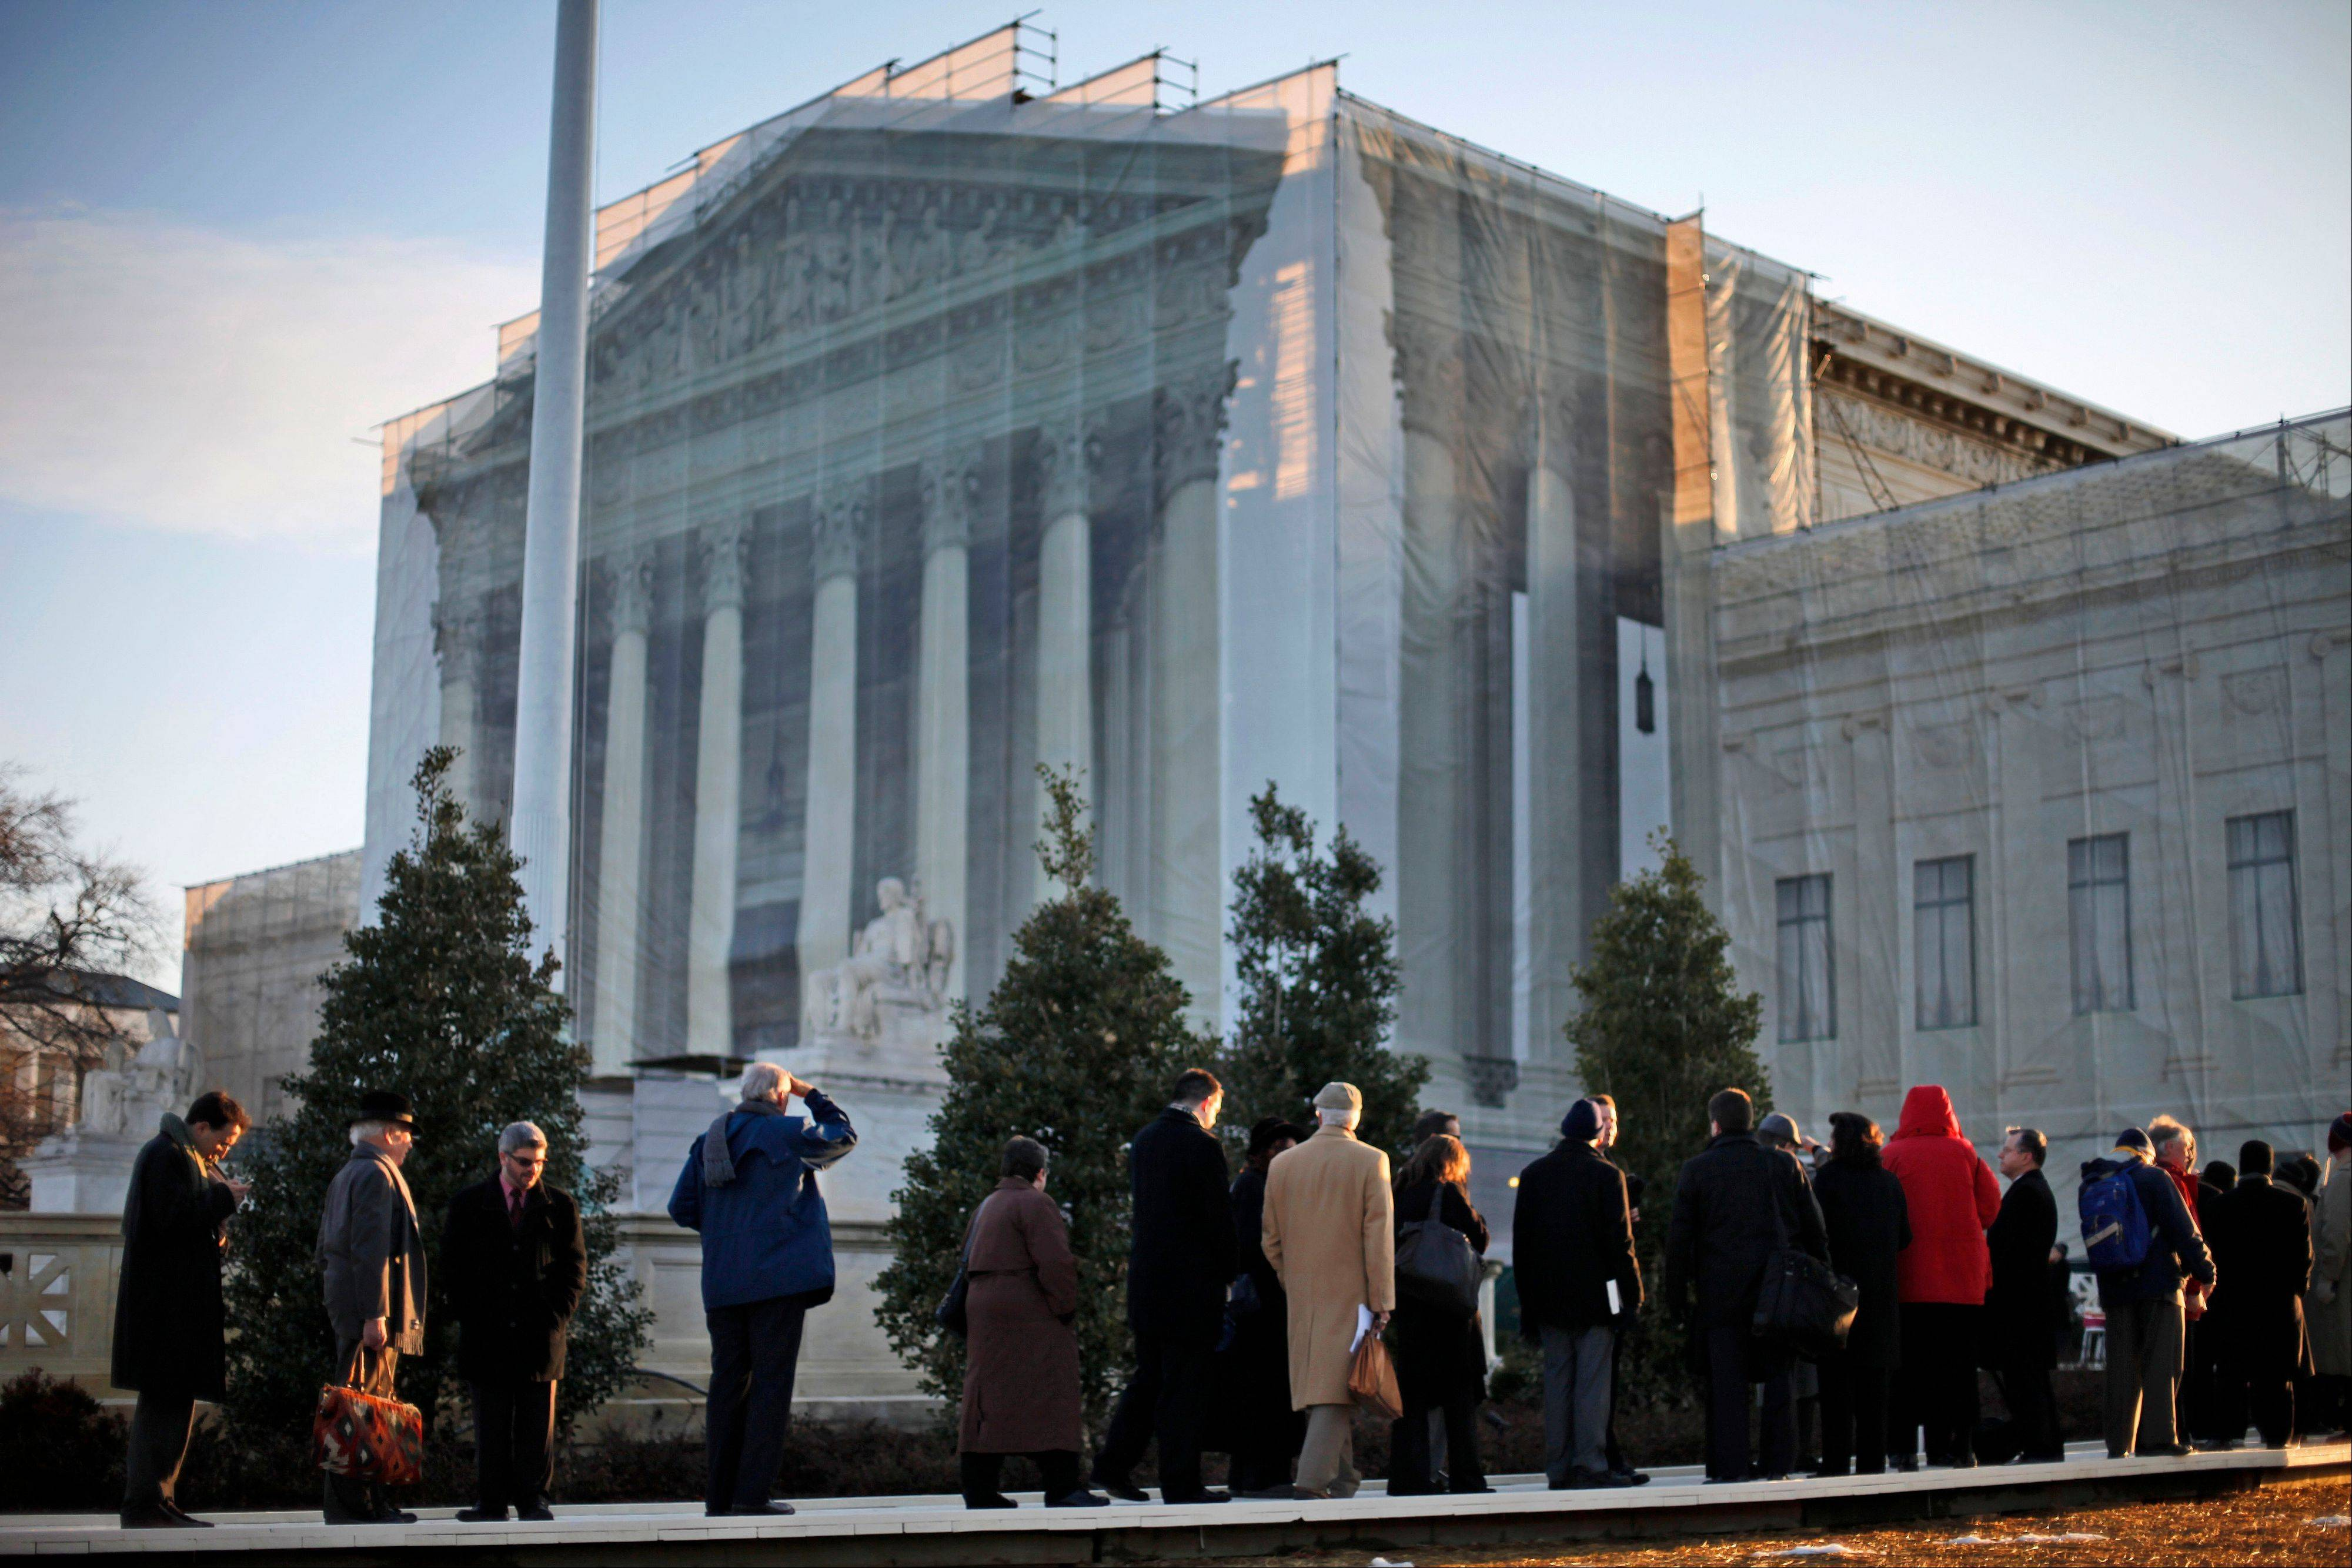 People line up for entrance into the Supreme Court in Washington, Tuesday.